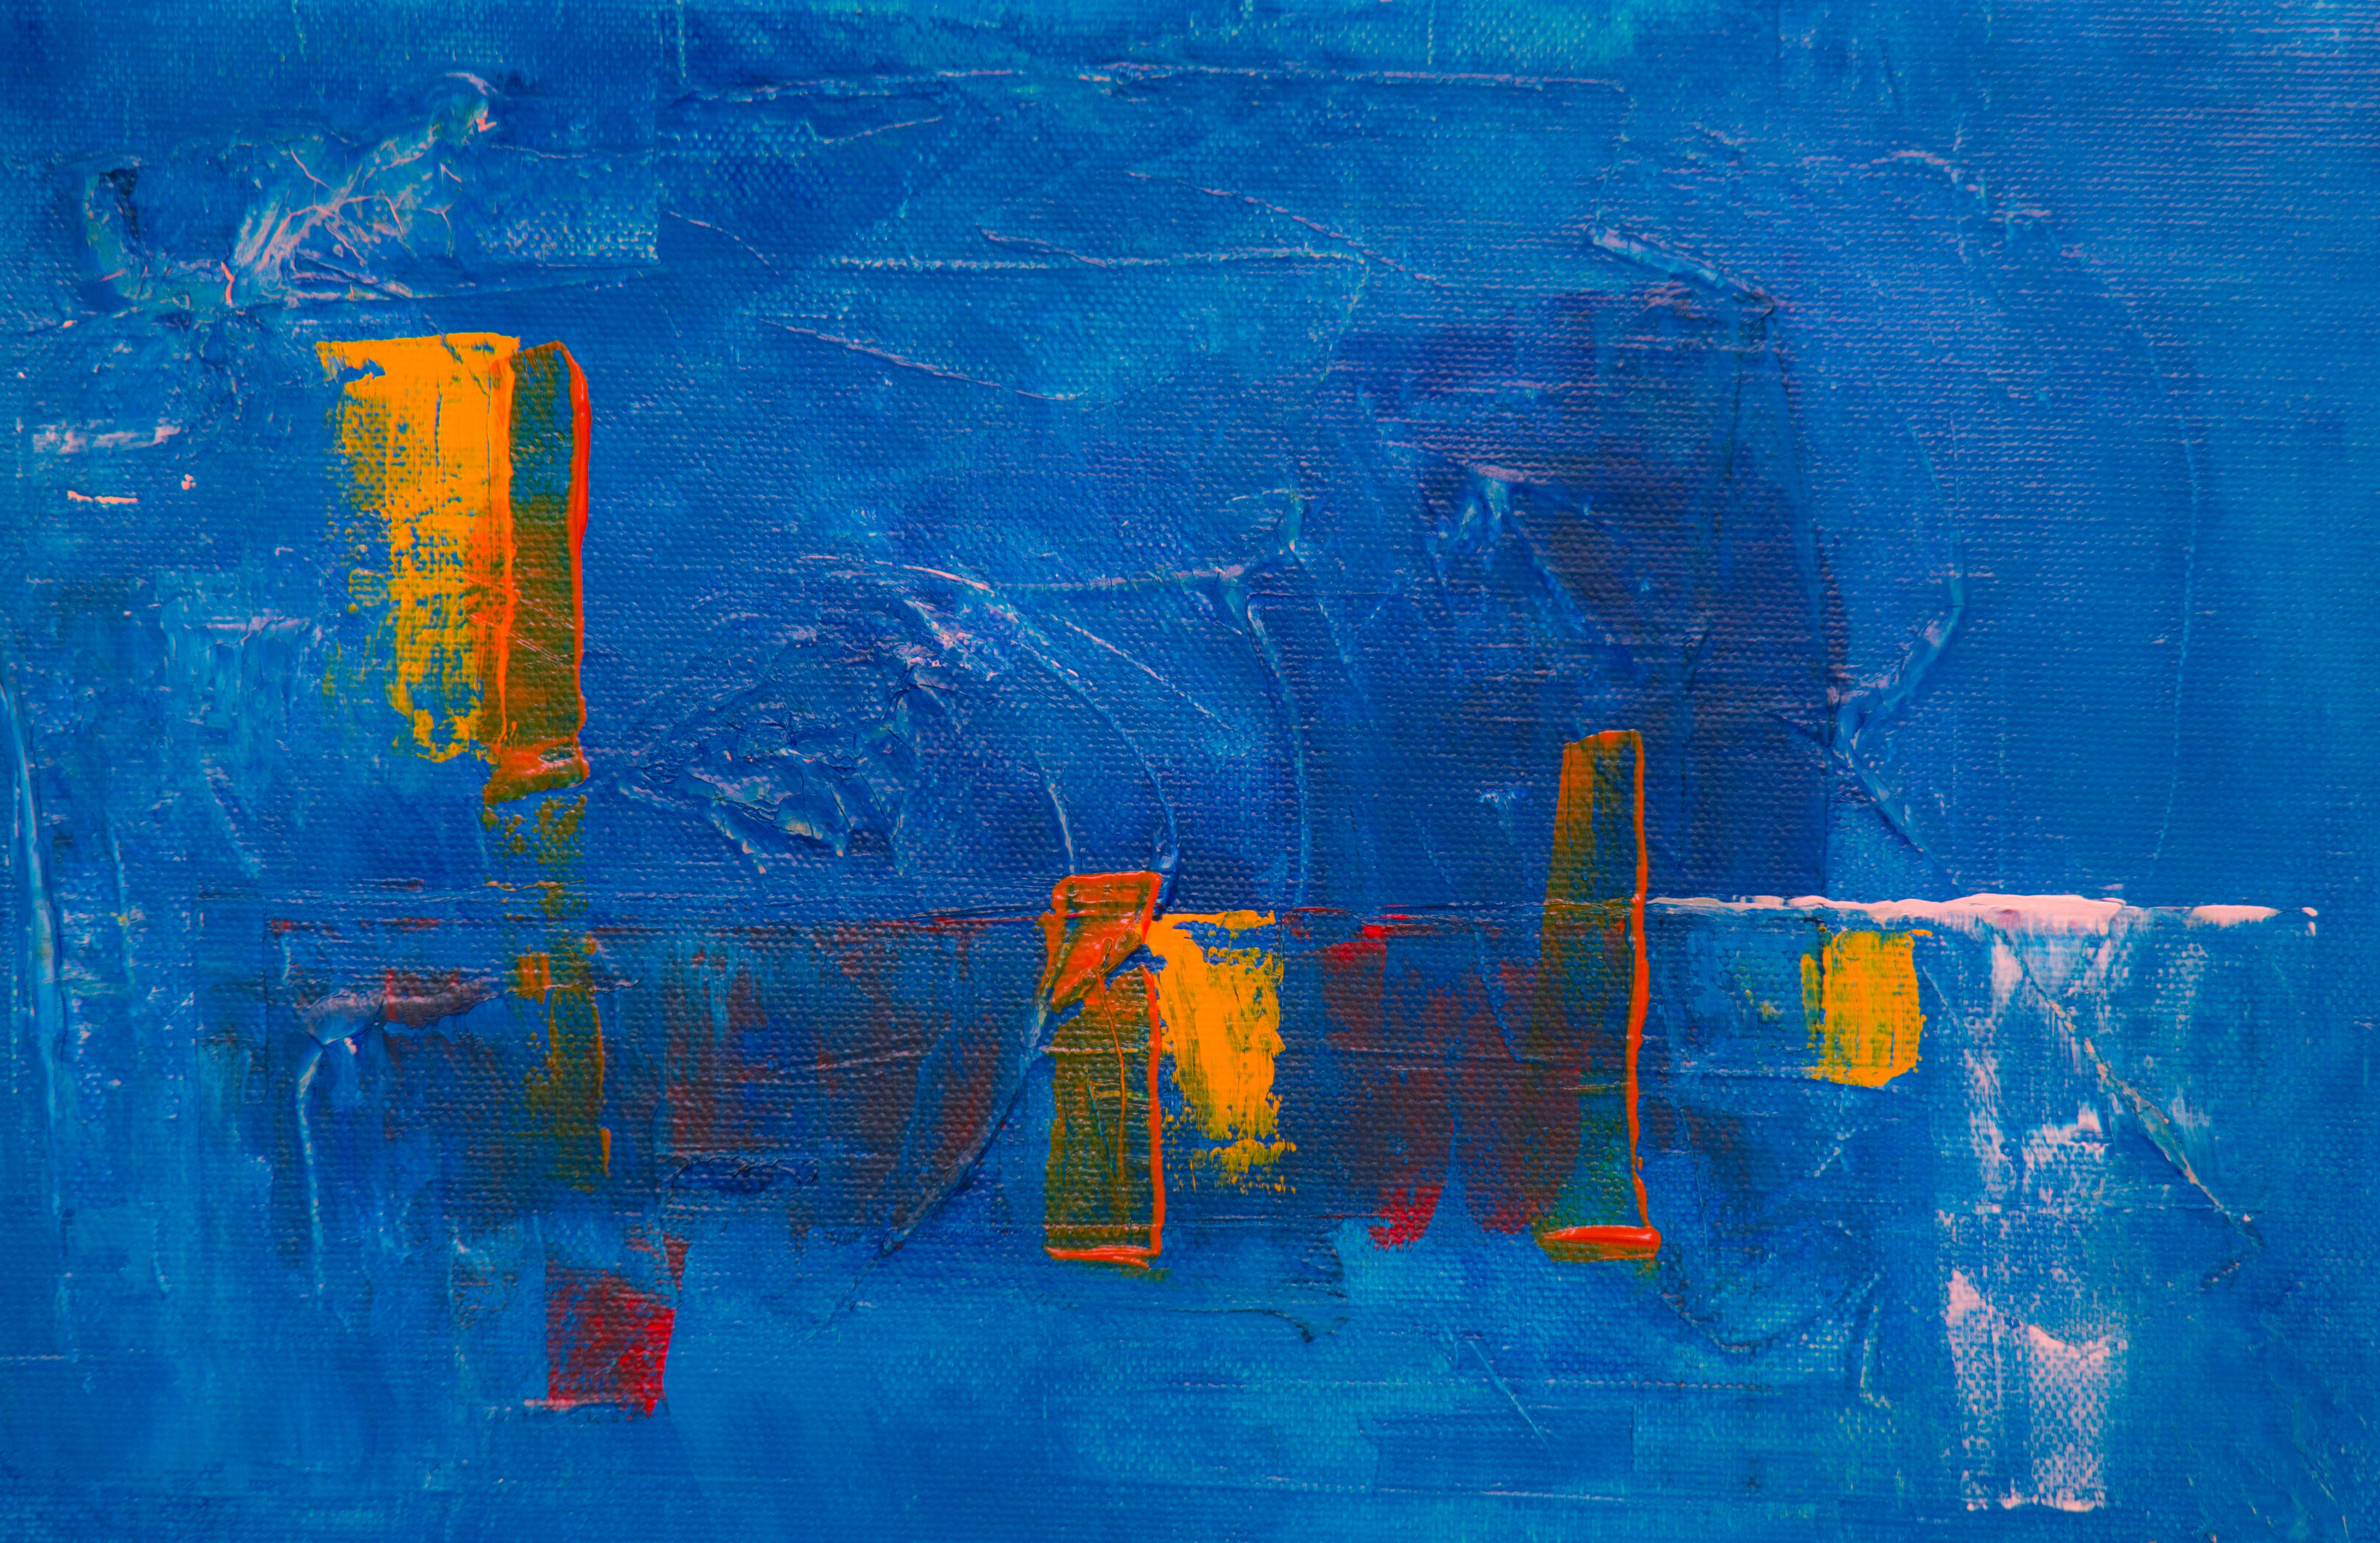 Blue and Multicolored Abstract Art